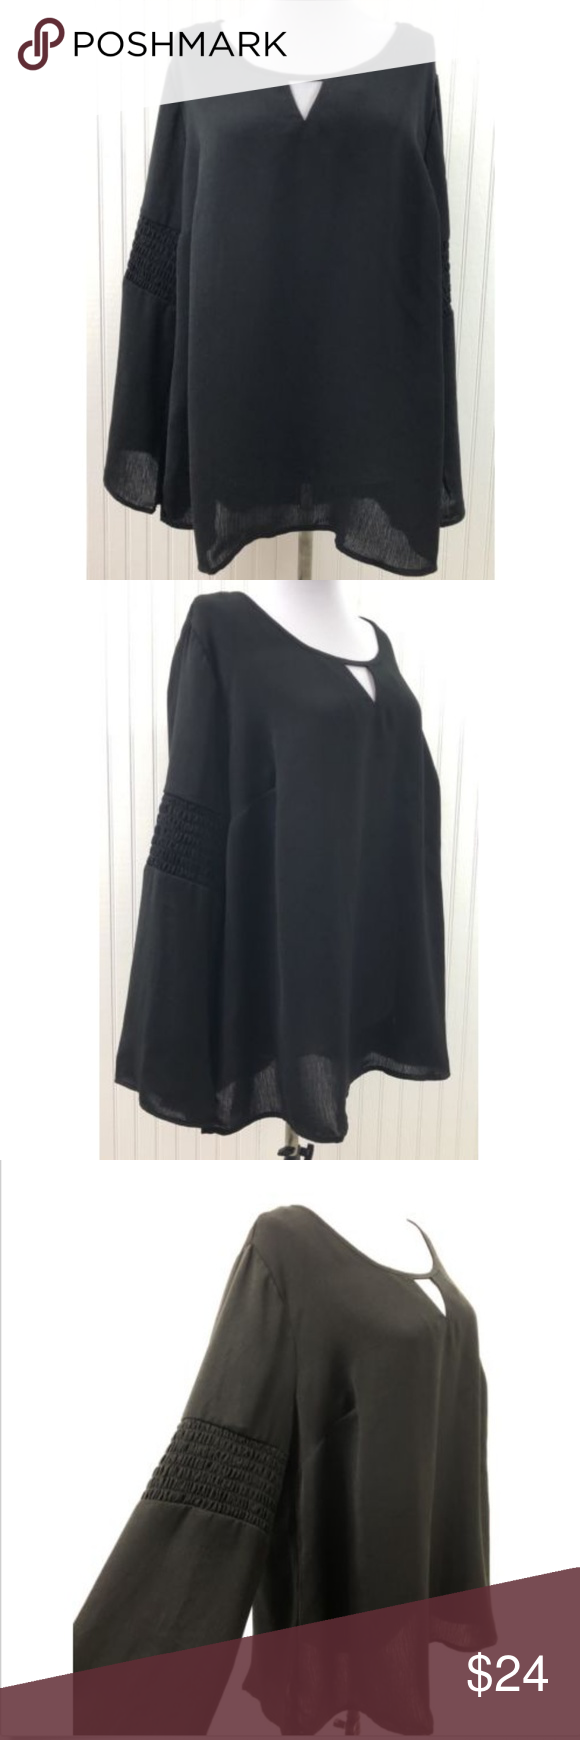 c983c053a2ddcf NY Collection NWT 1X Blouse Black Keyhole Neckline Beautiful, Brand New  with Tags Women's Plus